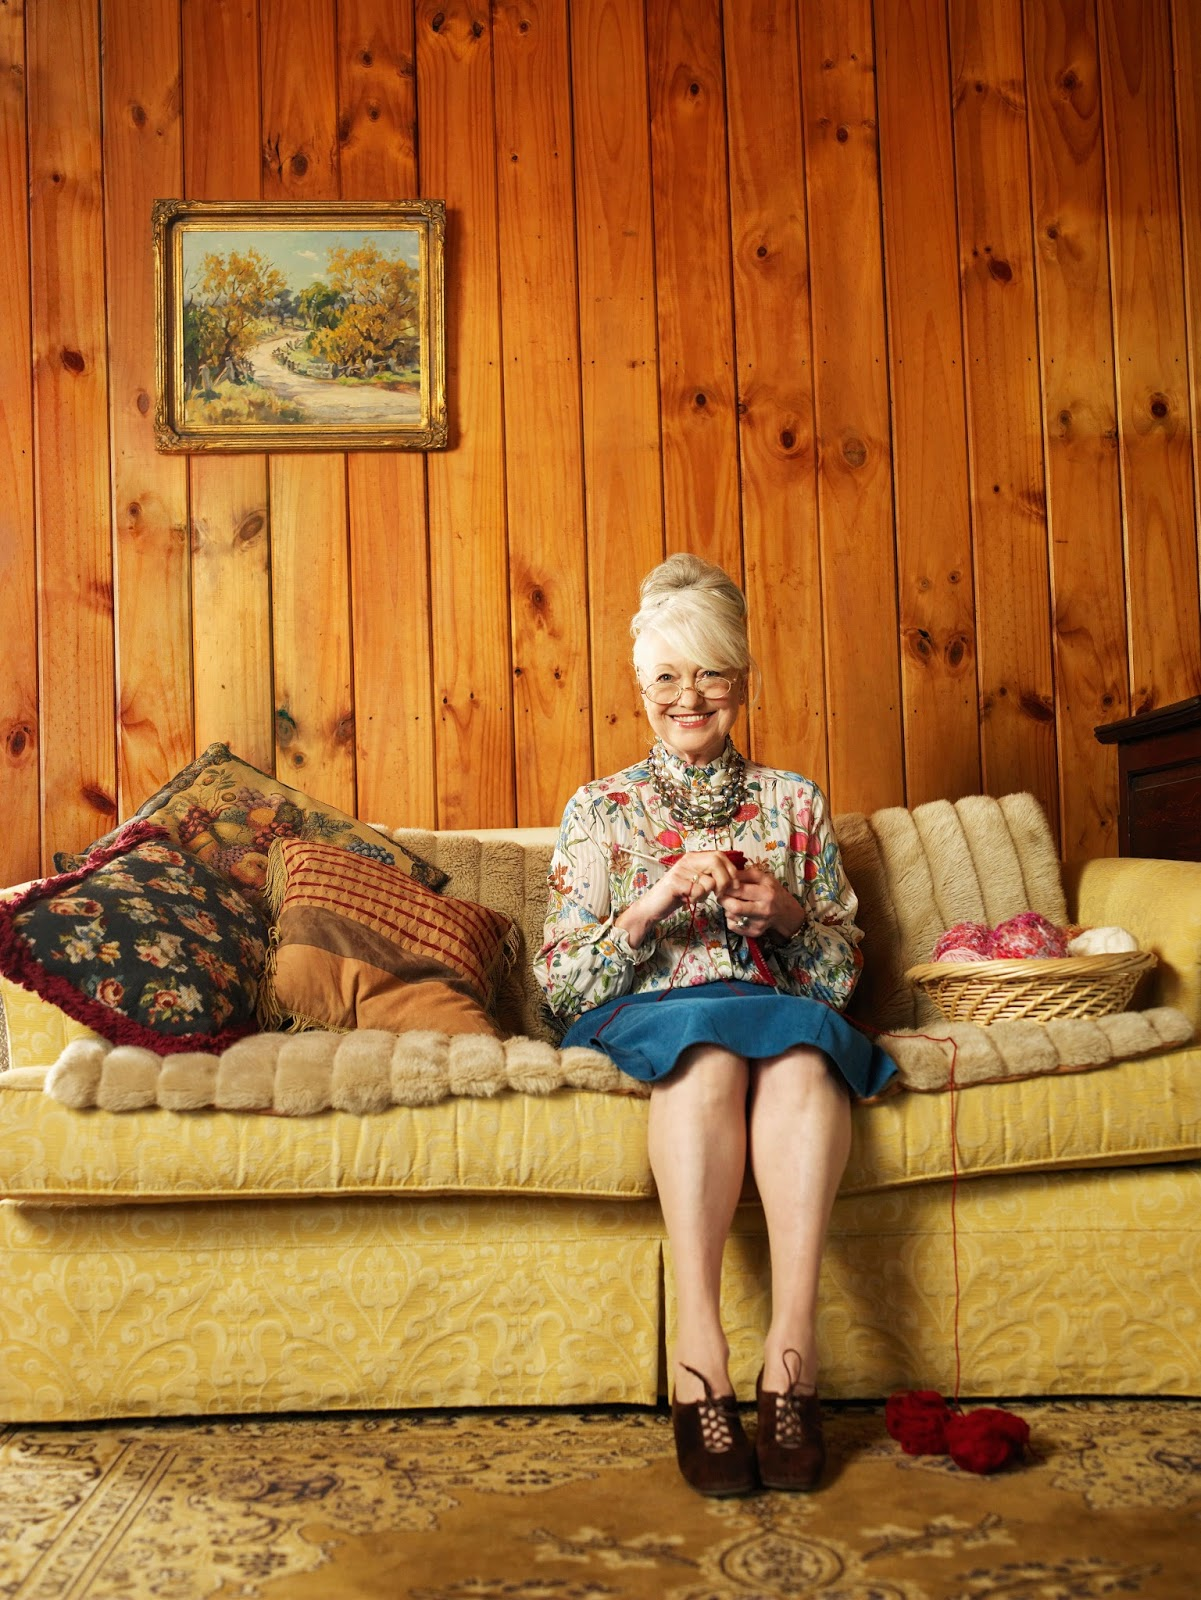 Woman sitting on a bright yellow sofa behind wood panelling